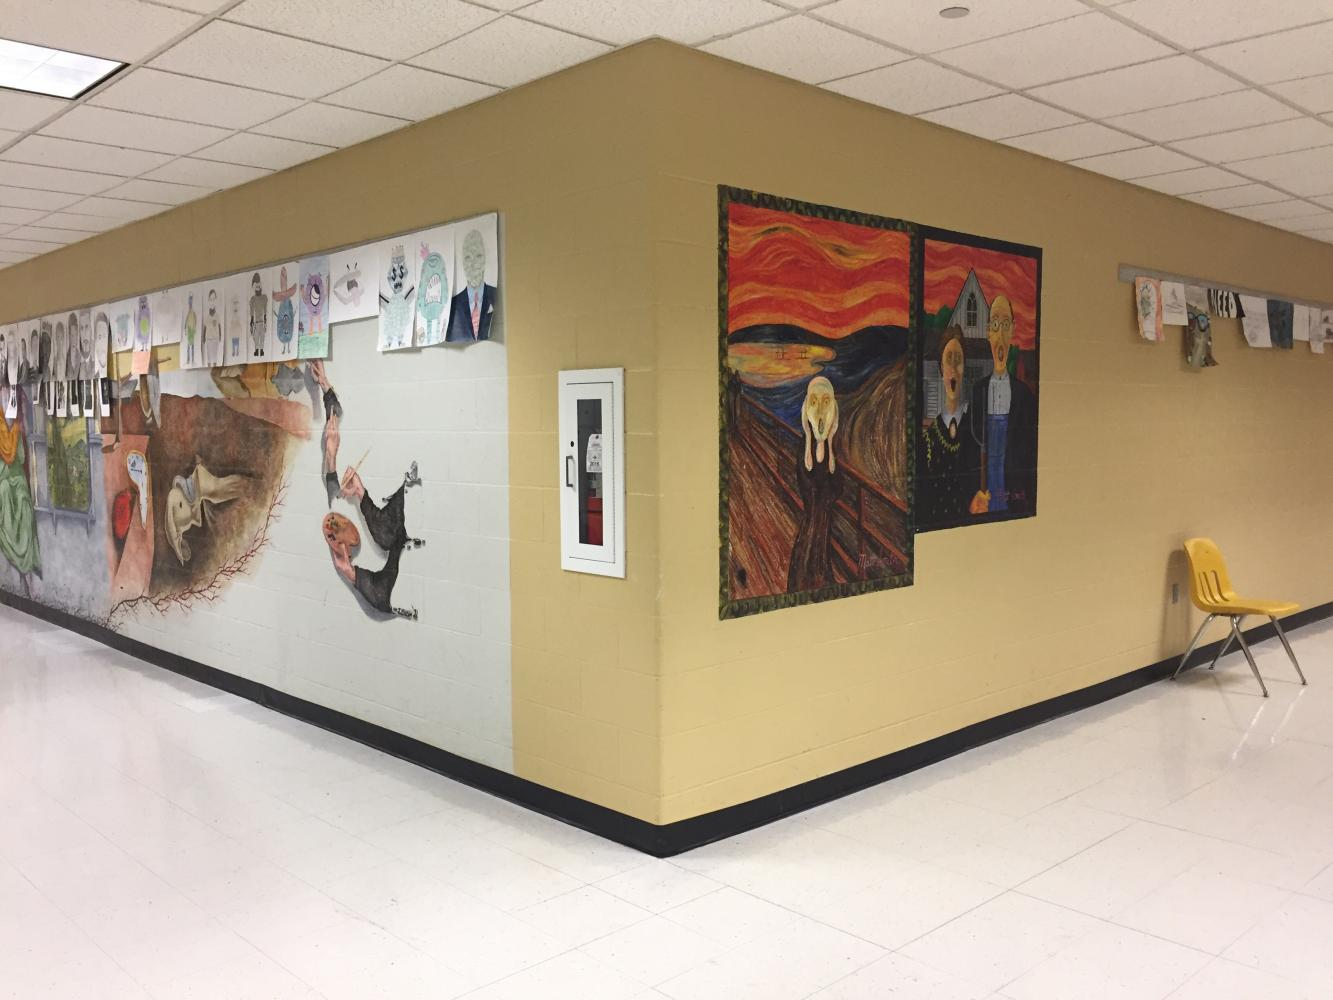 In the art hallway, murals have been added to be showcased along students artwork.